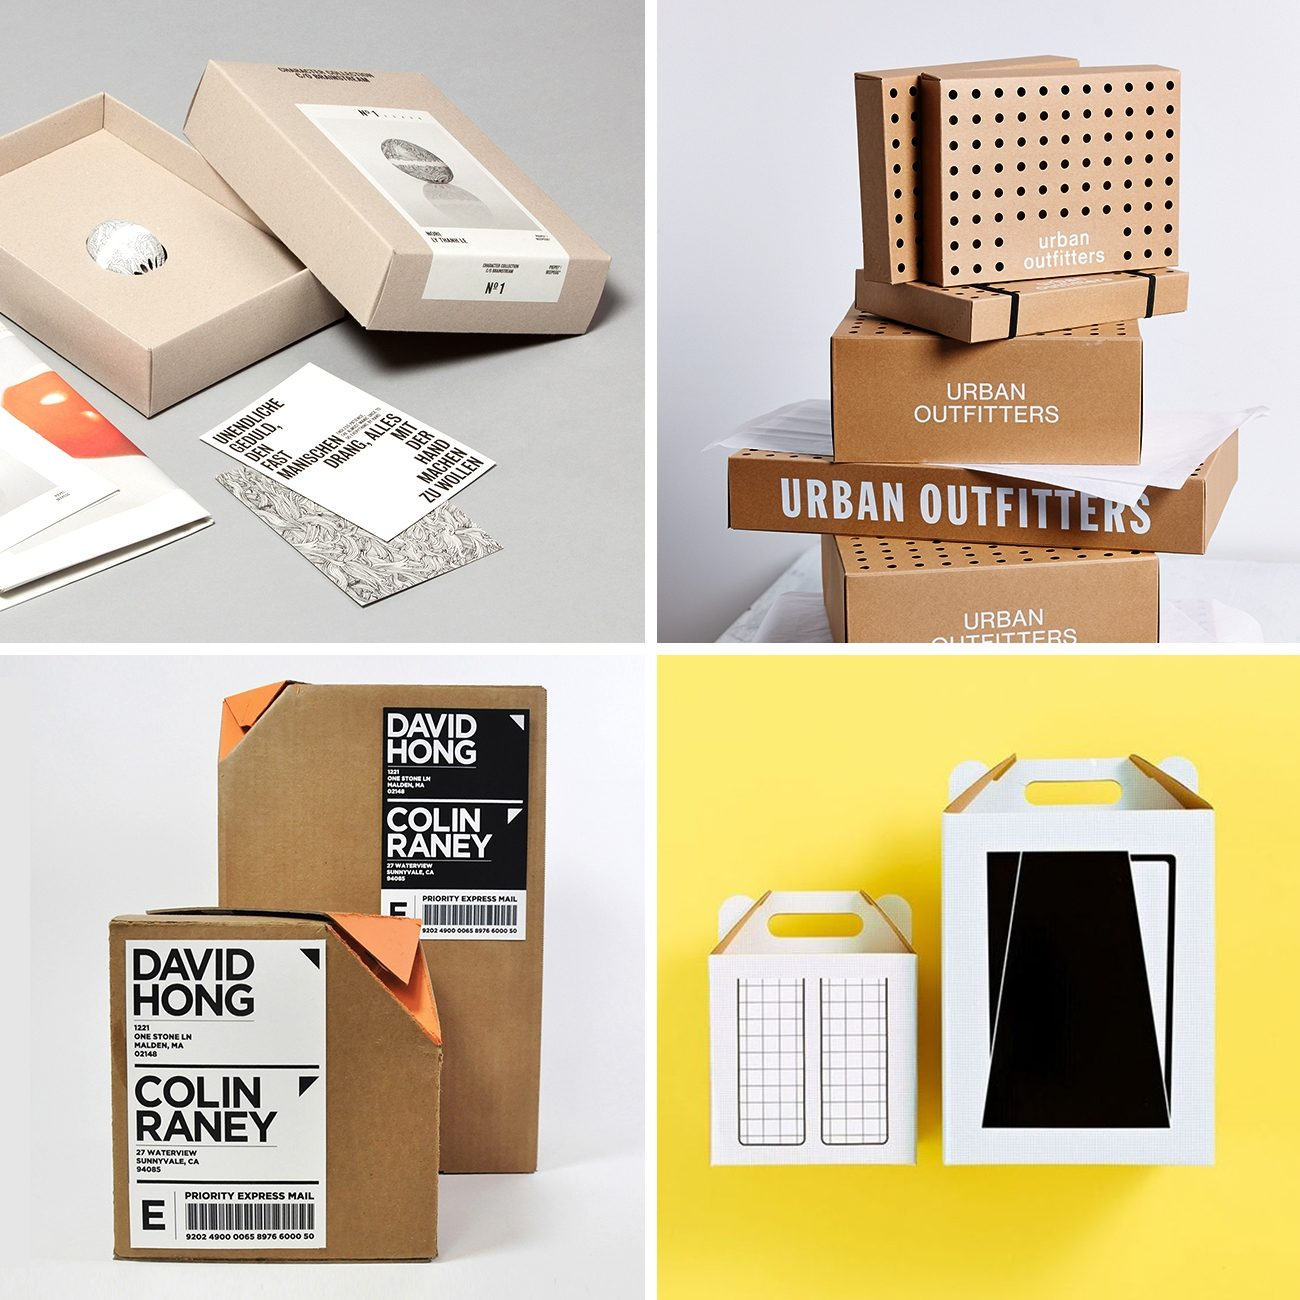 Photos via: A Practice for Everyday Life, Gabriel Klein, Ian Rousey, Chen Chen Hu, Allison Henry Aver 60 Ideas to Spruce Up Your Holiday Packaging Design